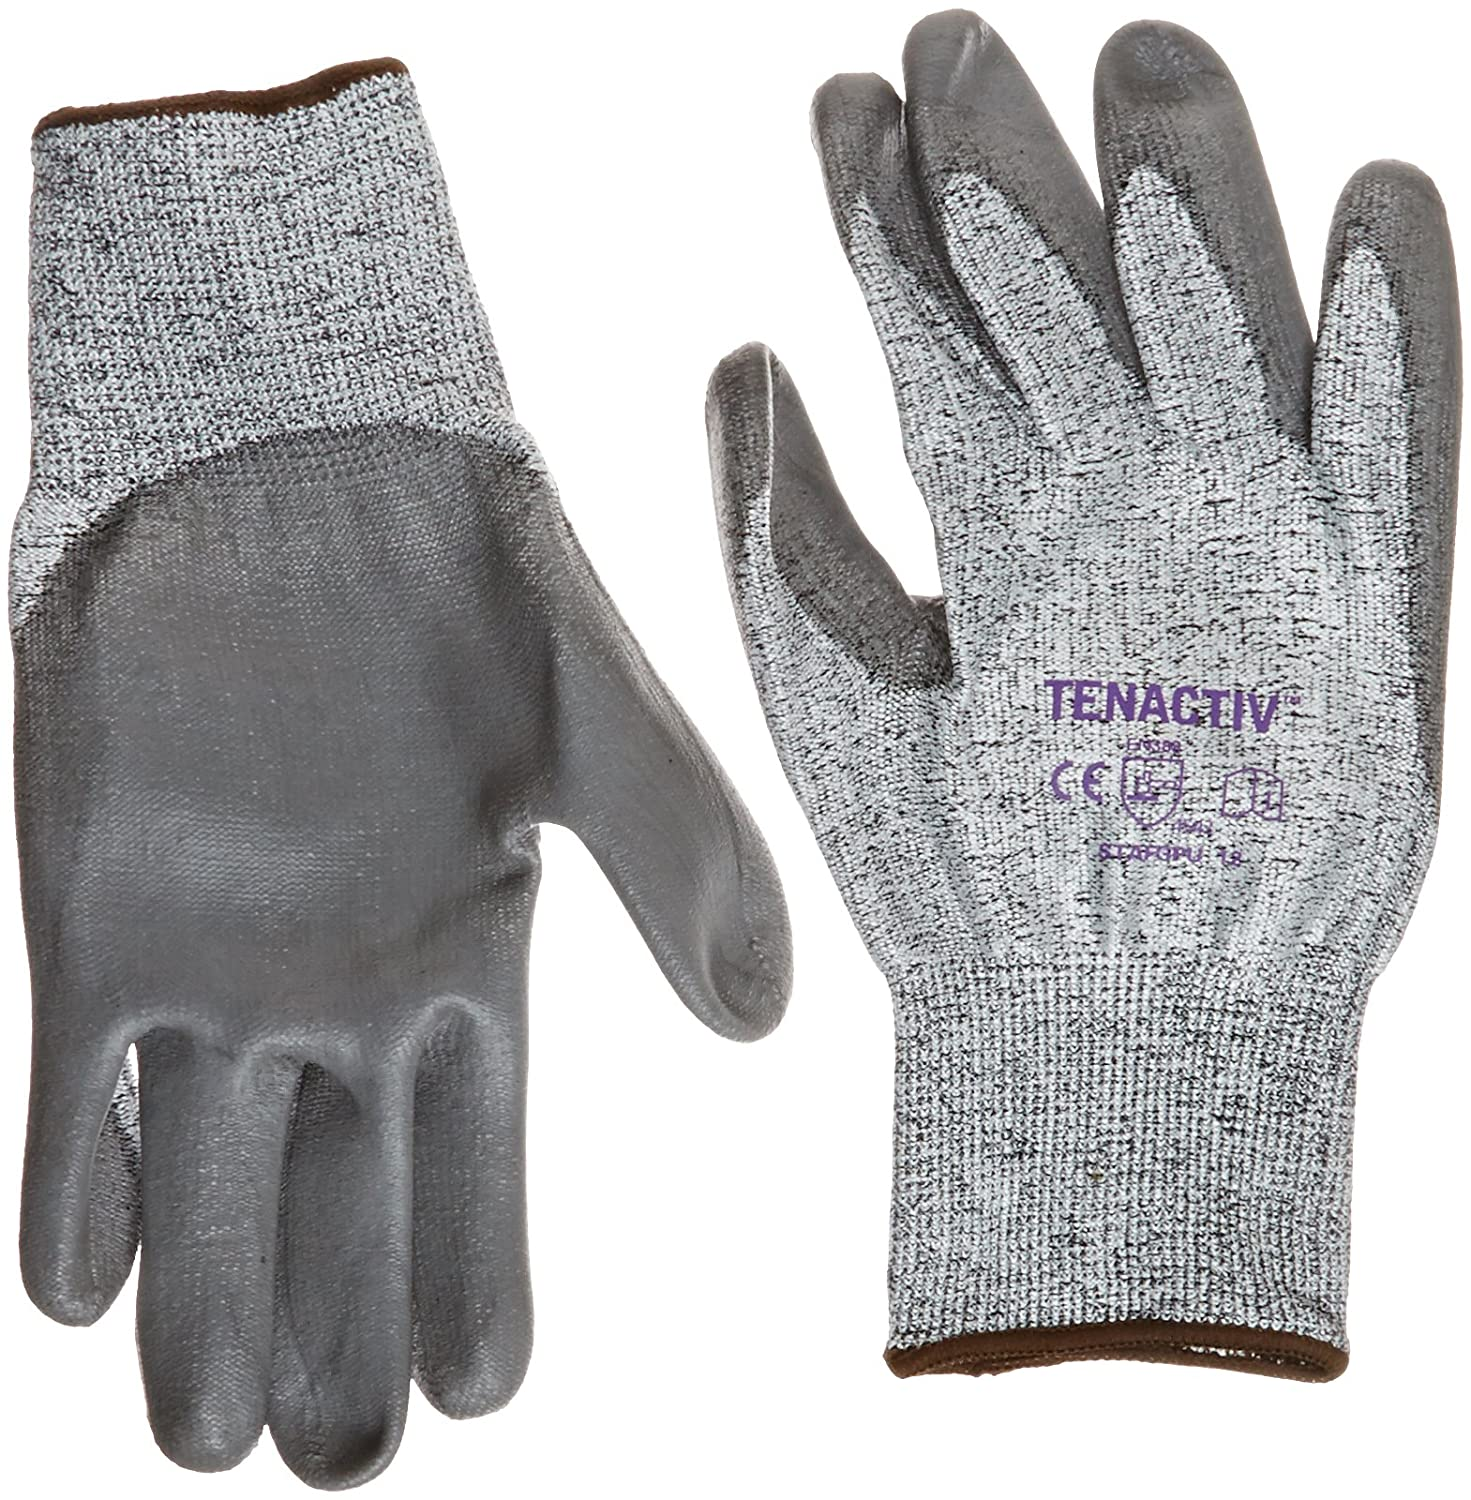 Cut-Resistant Size 12 13-gauge Thickness Speckled-Gray Pack of 1 Pair Superior Glove Works STAFGPU Tenactiv Fibers//Fiberglass High Perform Glove with Polyurethane Palm